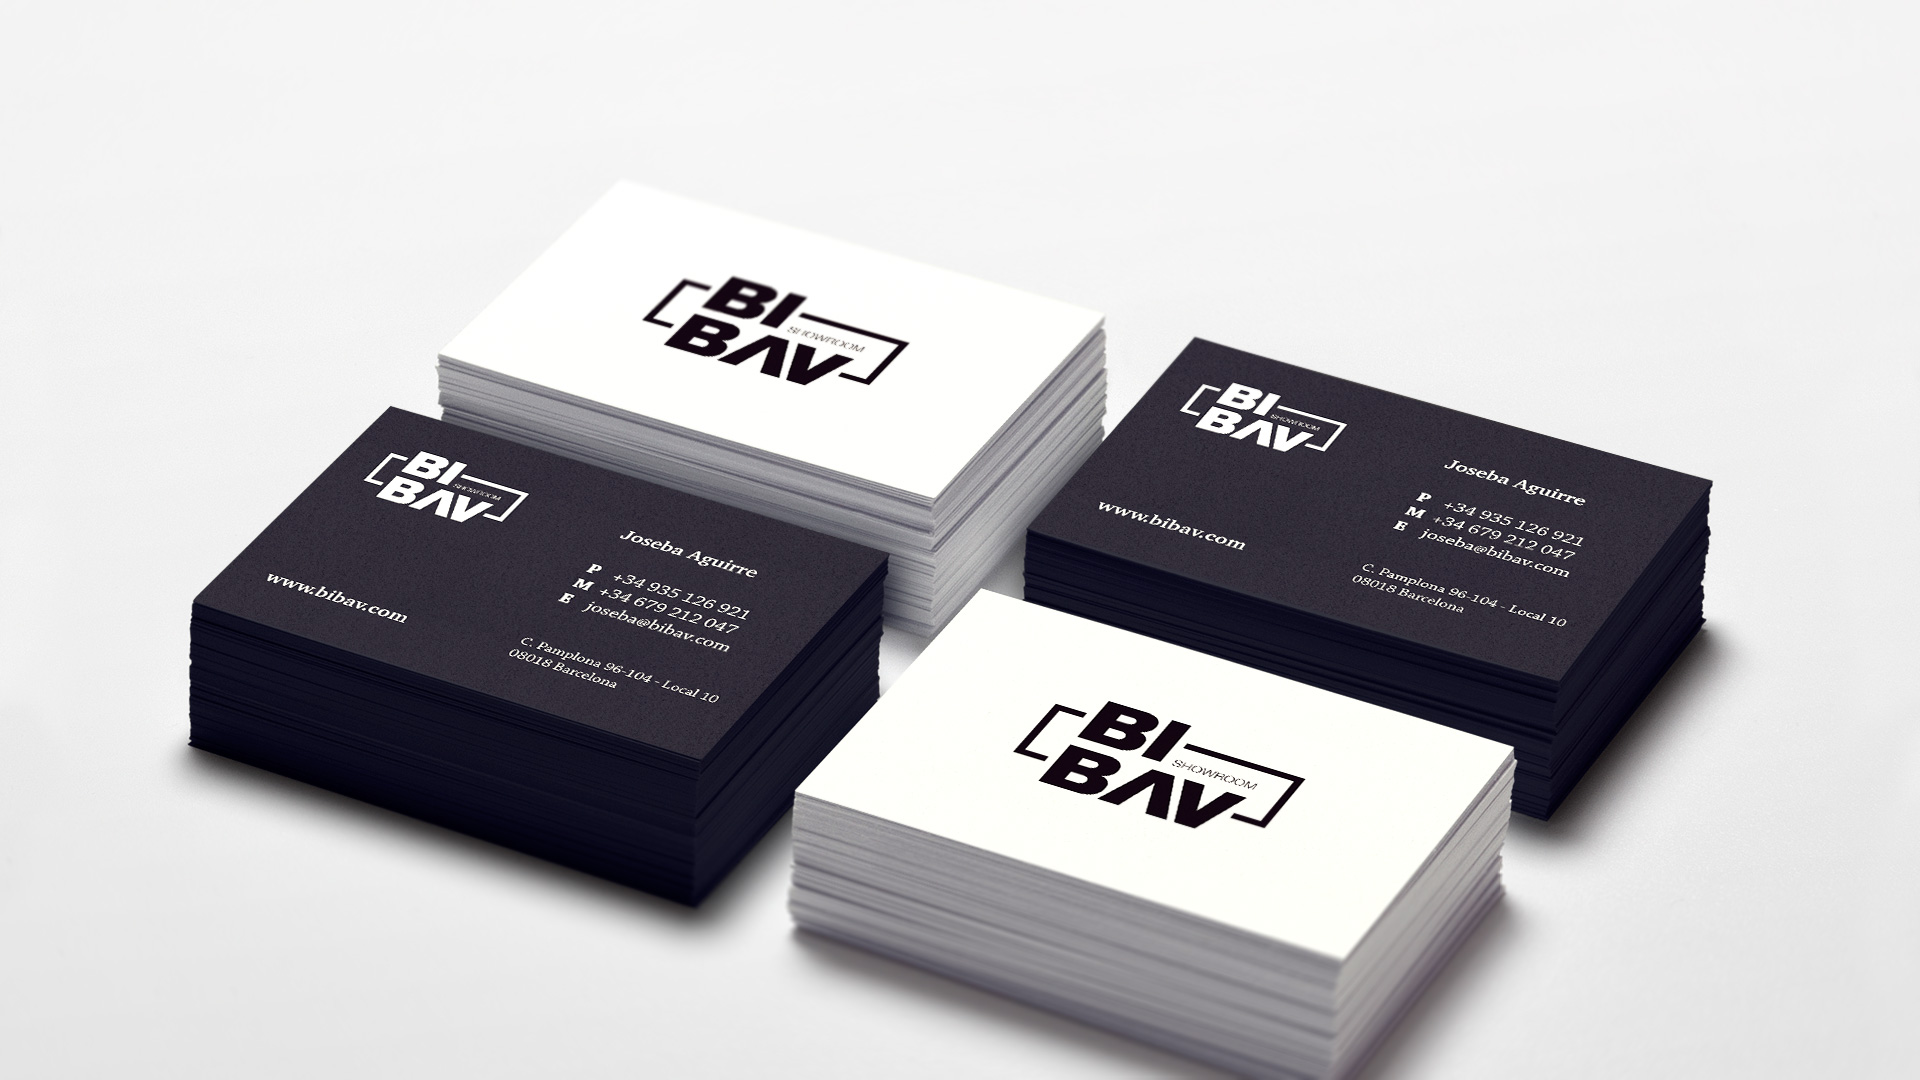 3a_design_graphic_identity_corporate